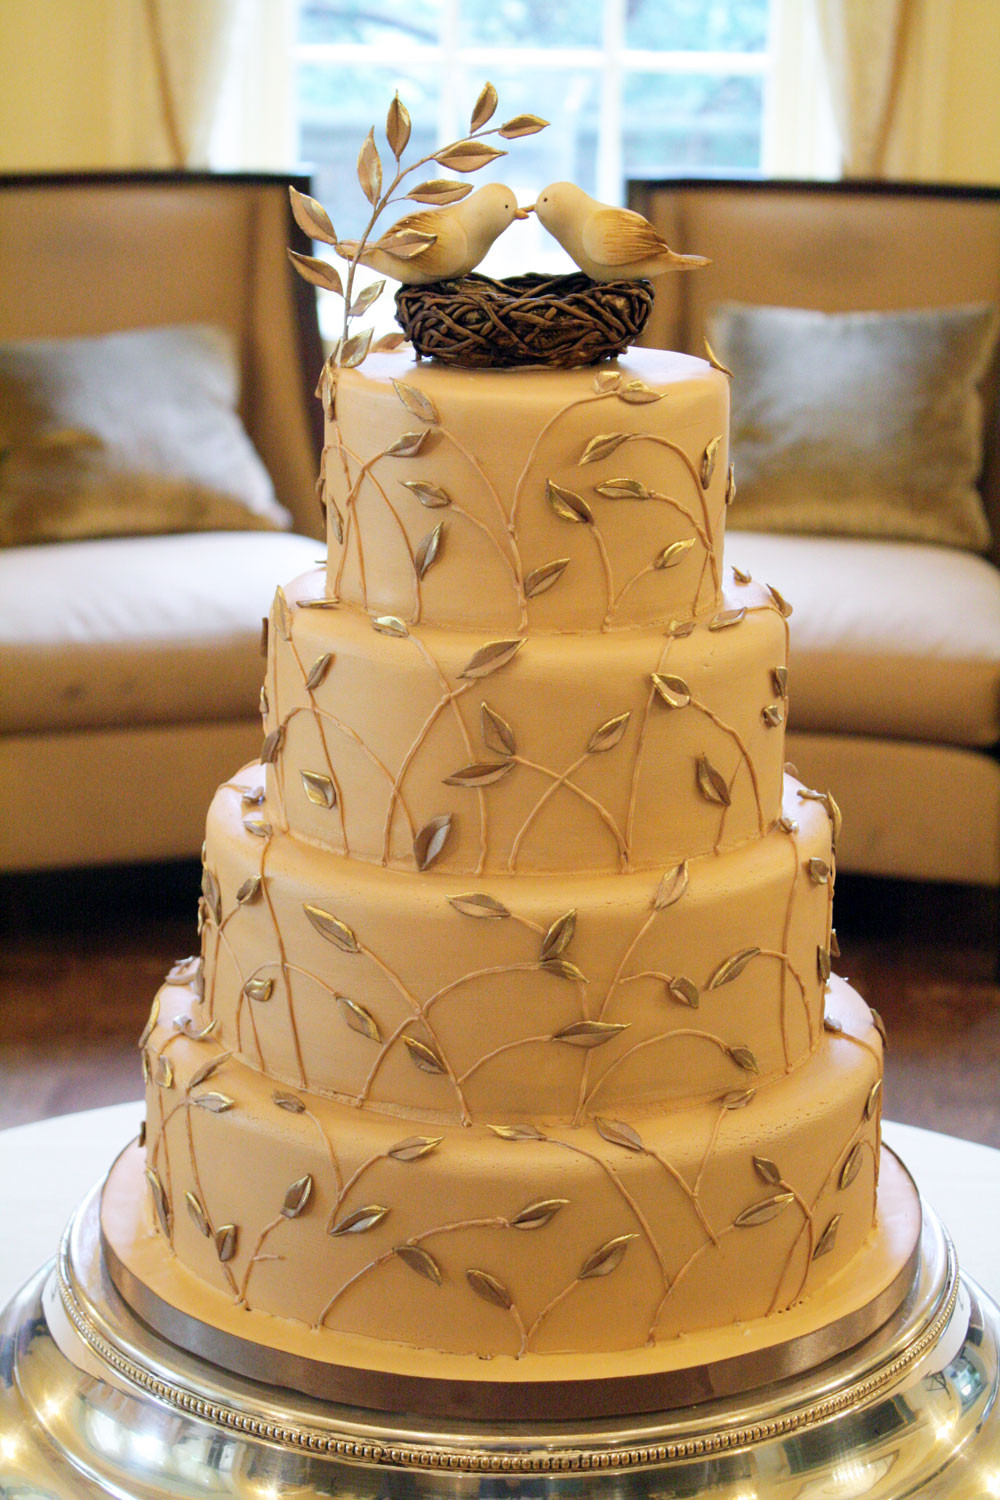 Top Of Wedding Cakes  Let Them Eat Cake At Your Wedding Love Birds Top This Cake